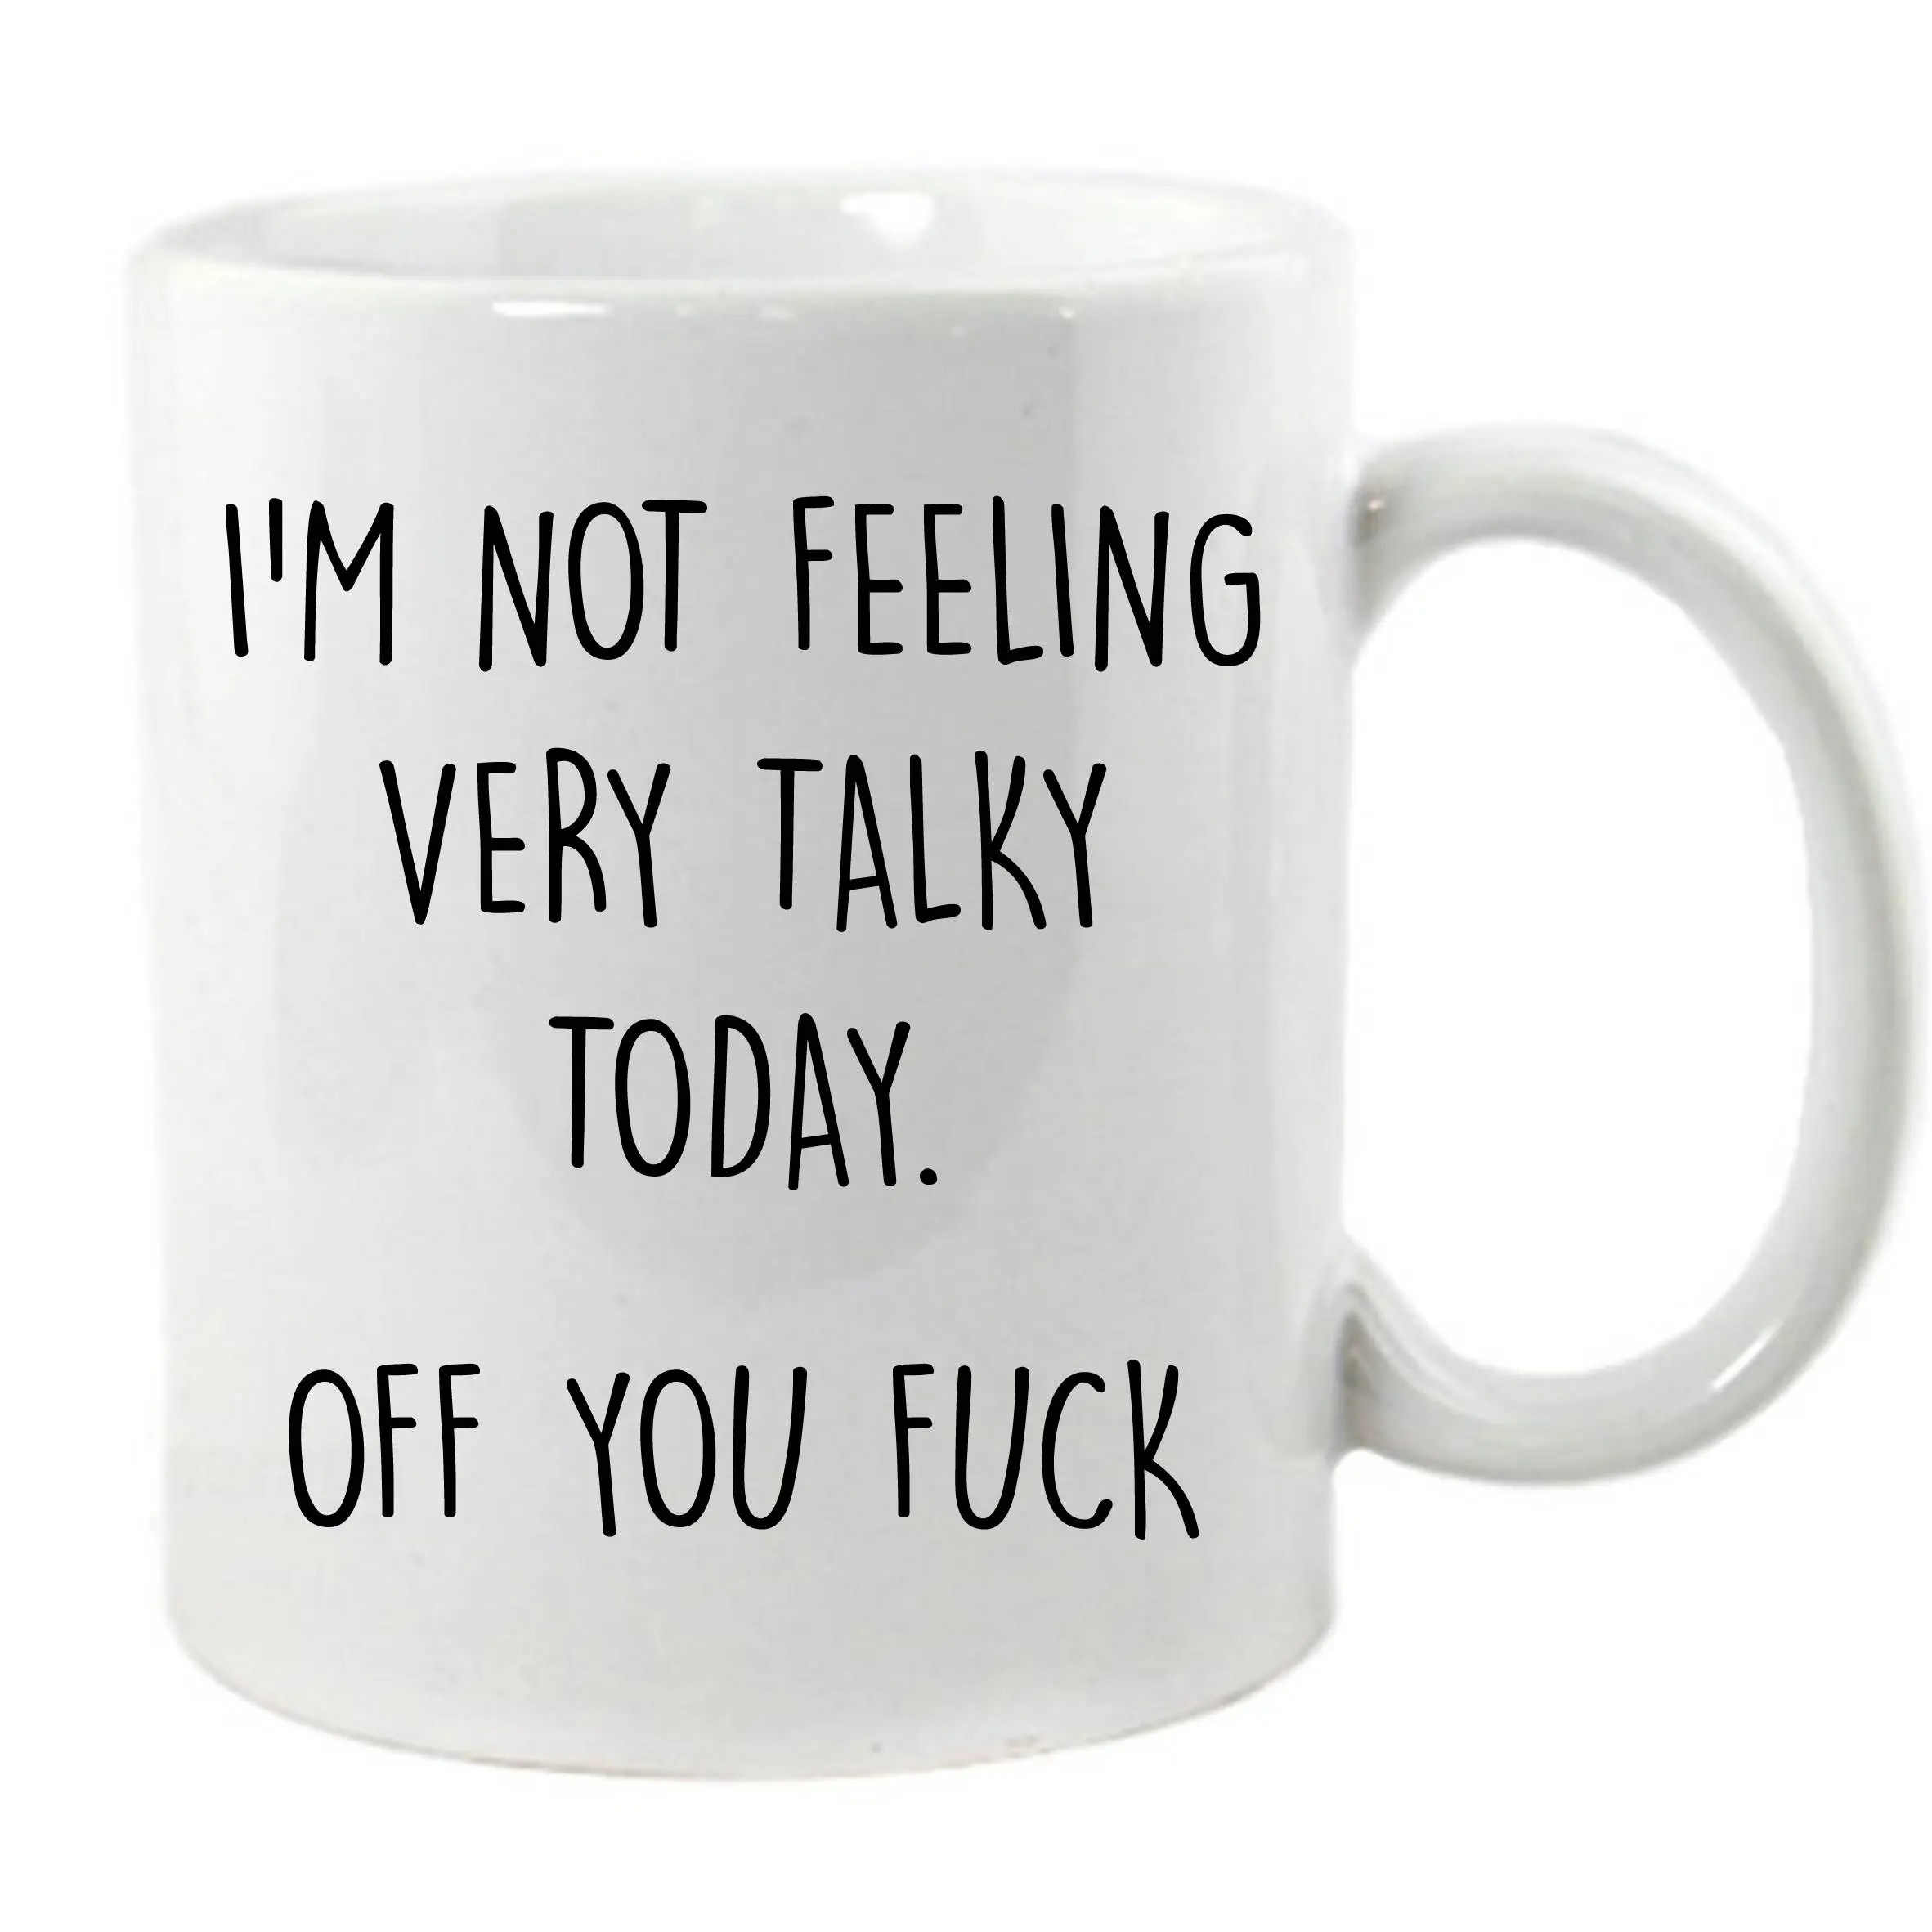 I M Not Feeling Very Talky Today Off You Fk Mug